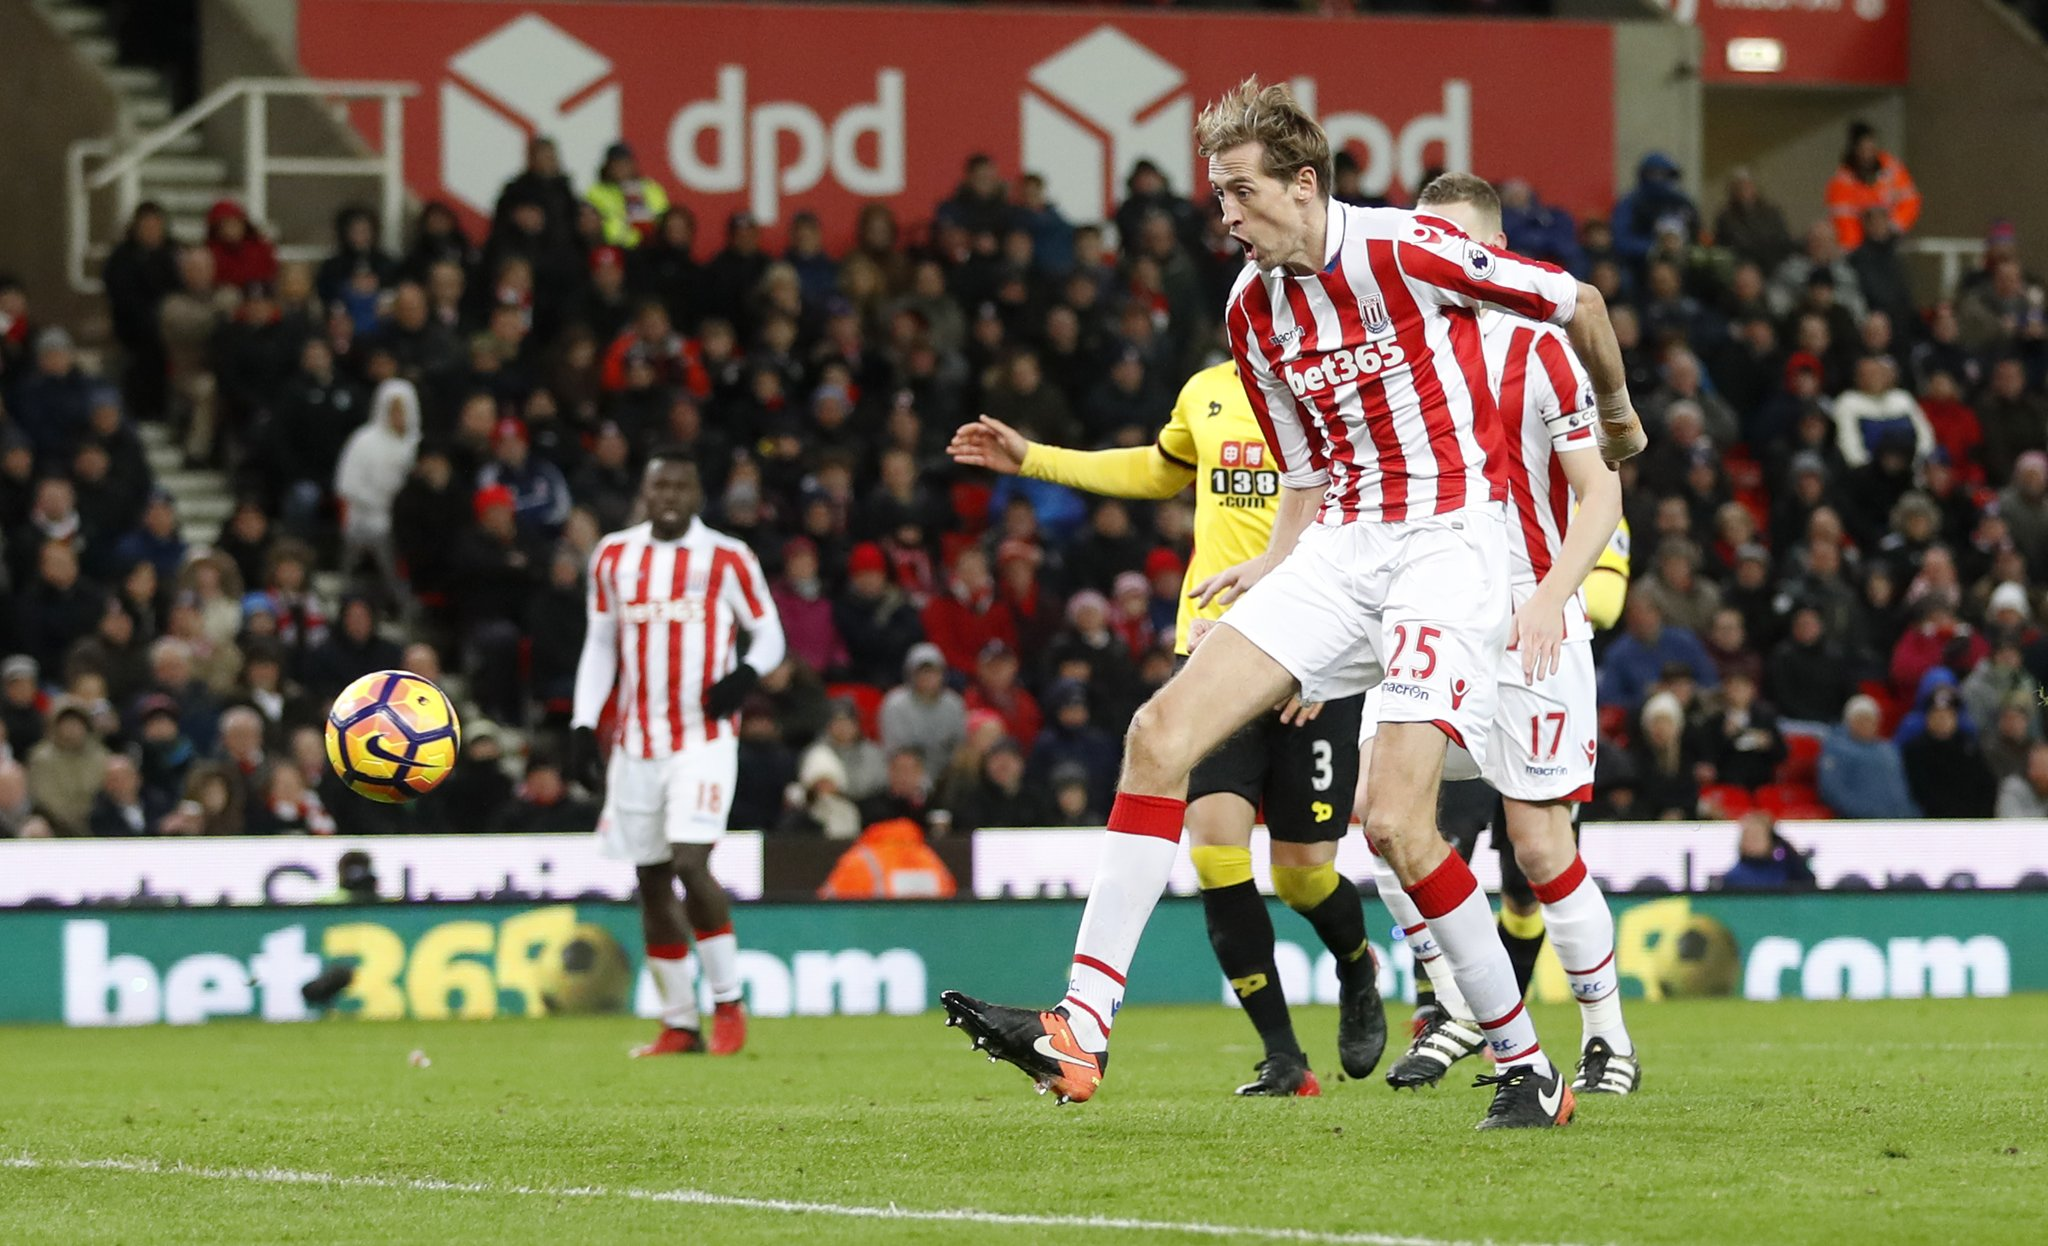 Ighalo Drought Continues As Watford Fall To Stoke